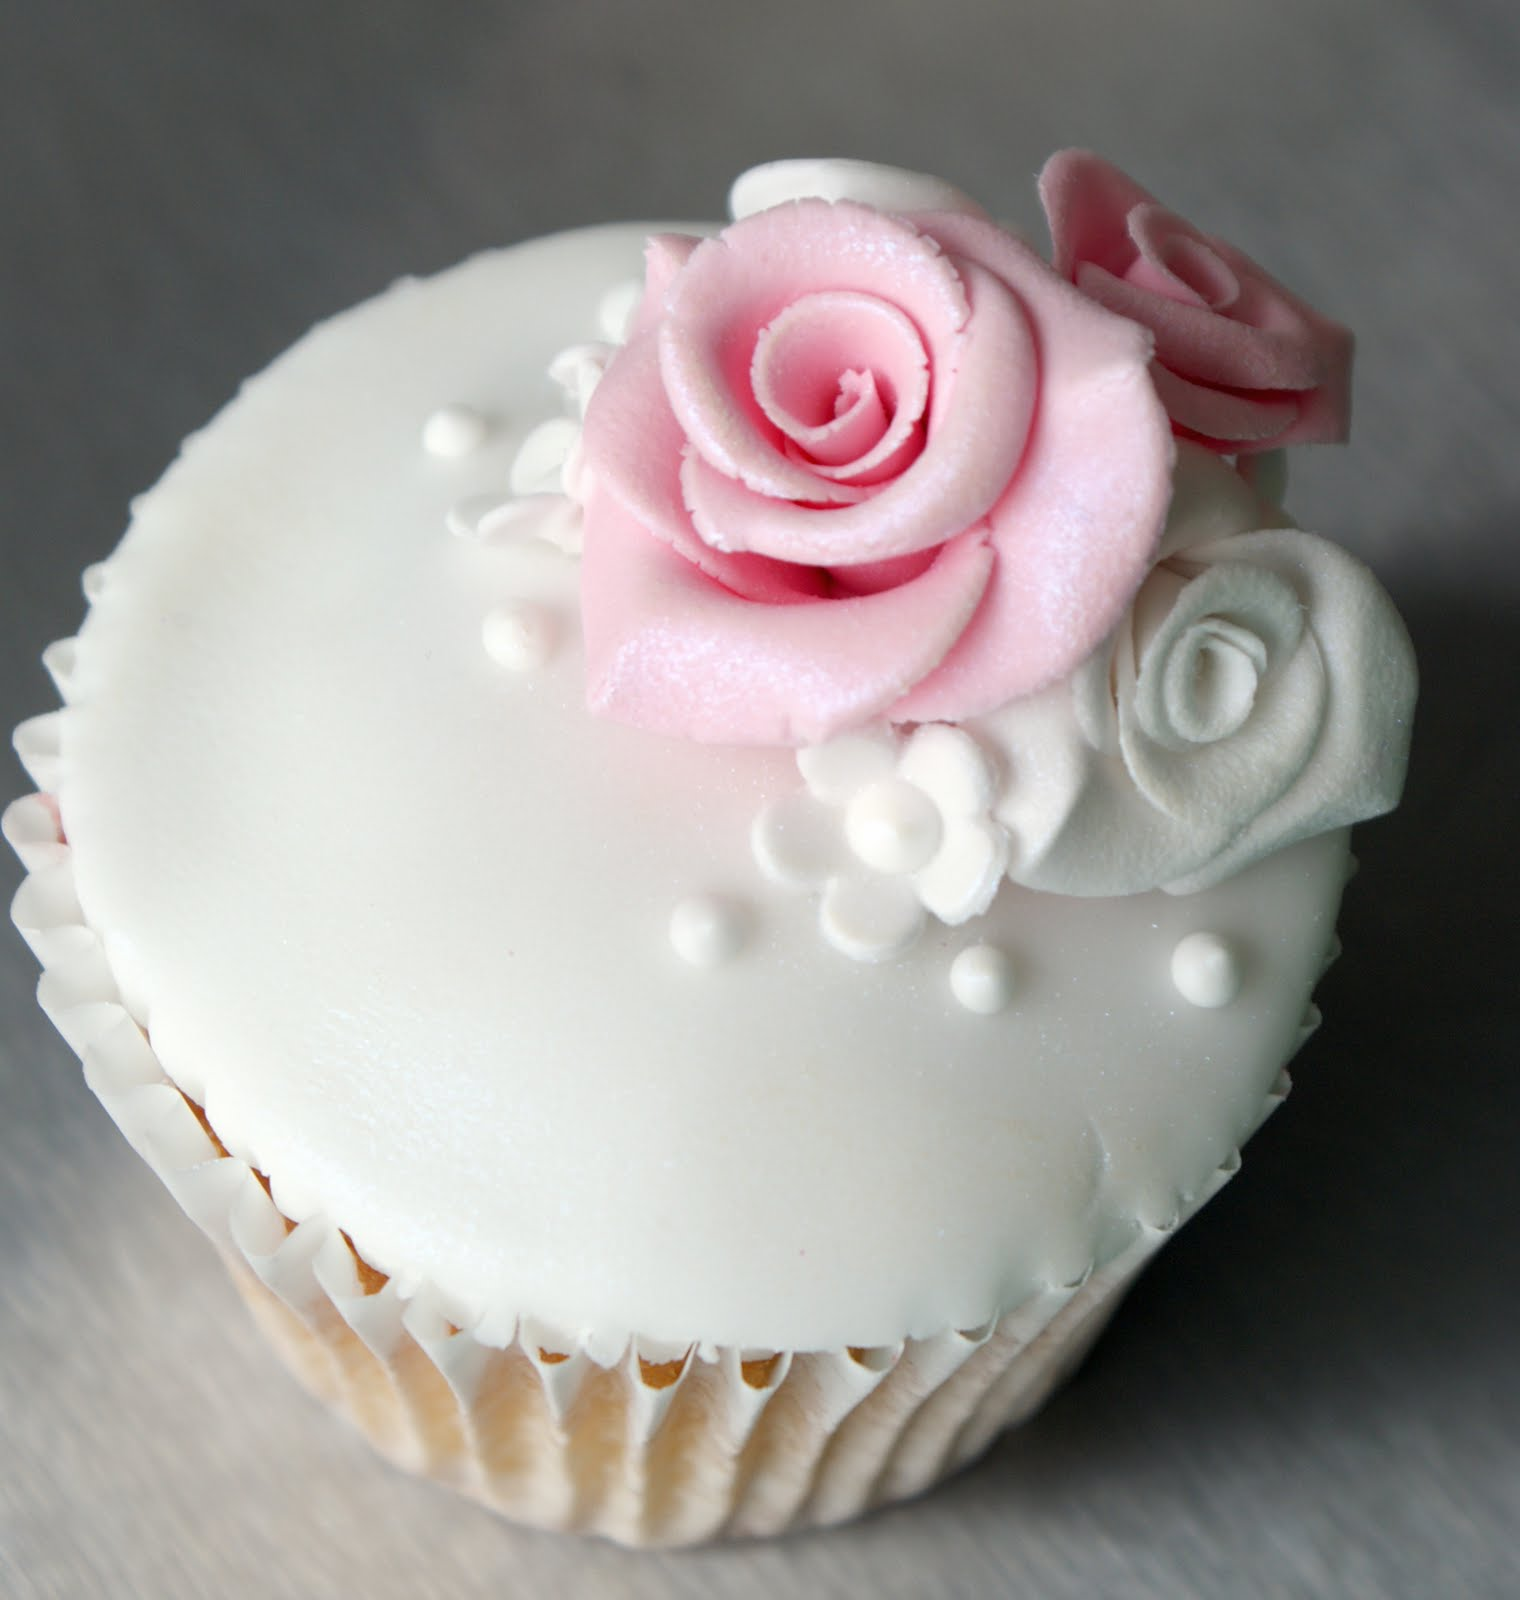 Icing Bliss: July 2011